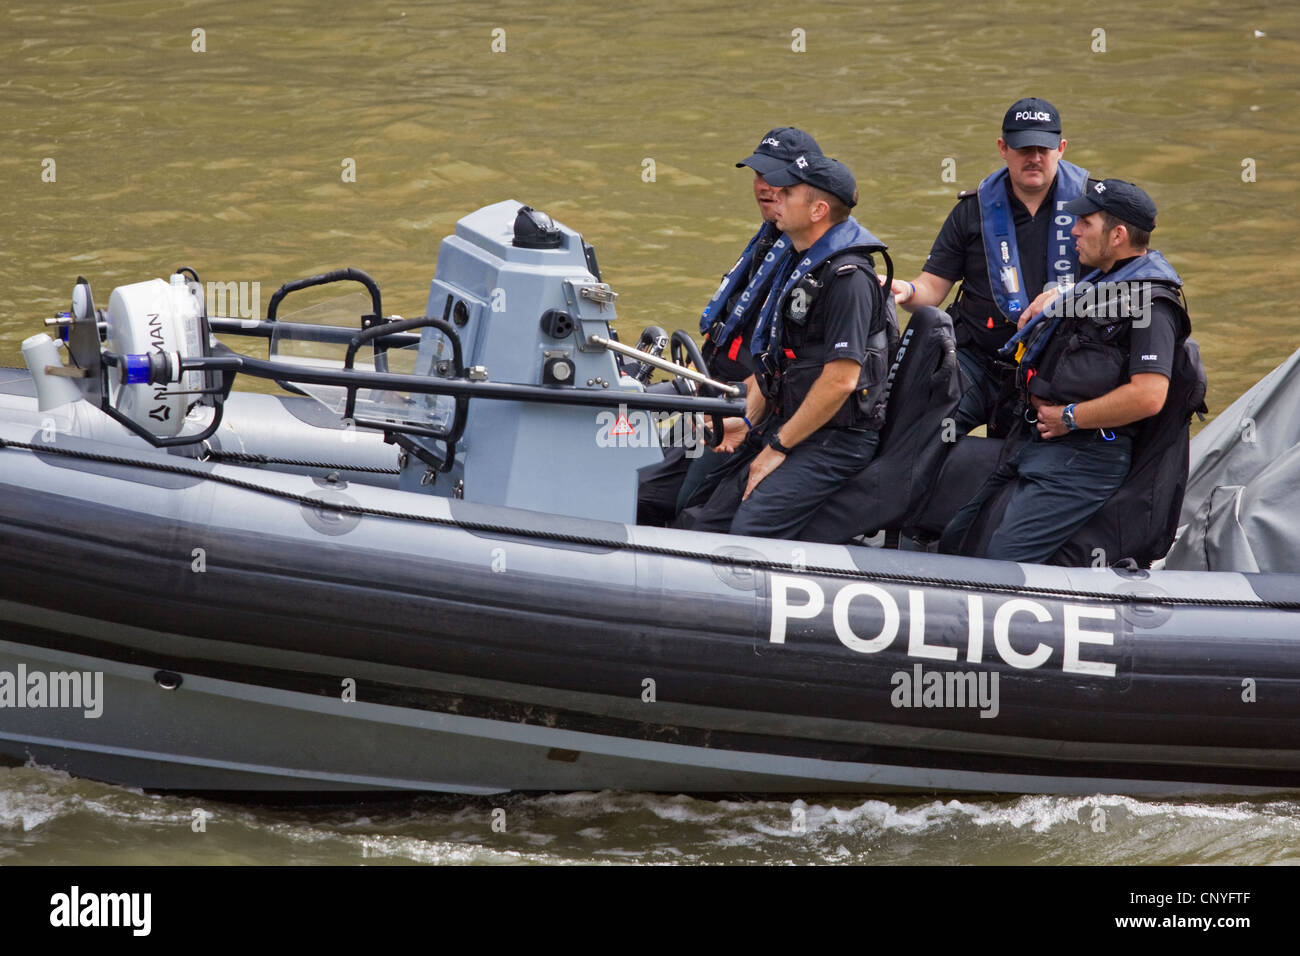 A police launch on patrol during the Bristol Harbour Festival 2011 - Stock Image